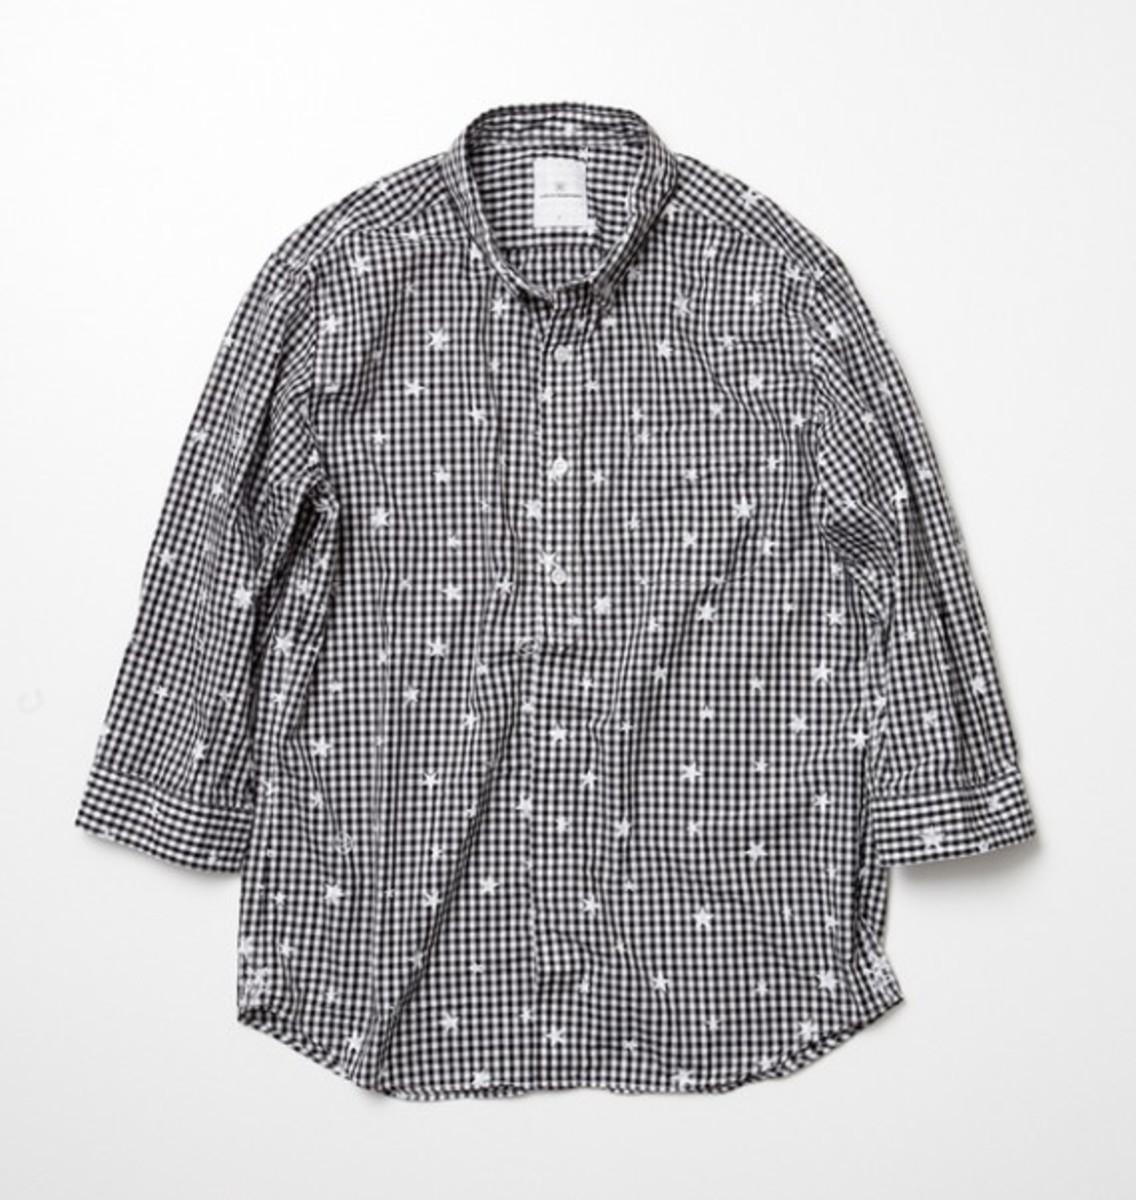 star-print-gingham-check-shirt-01